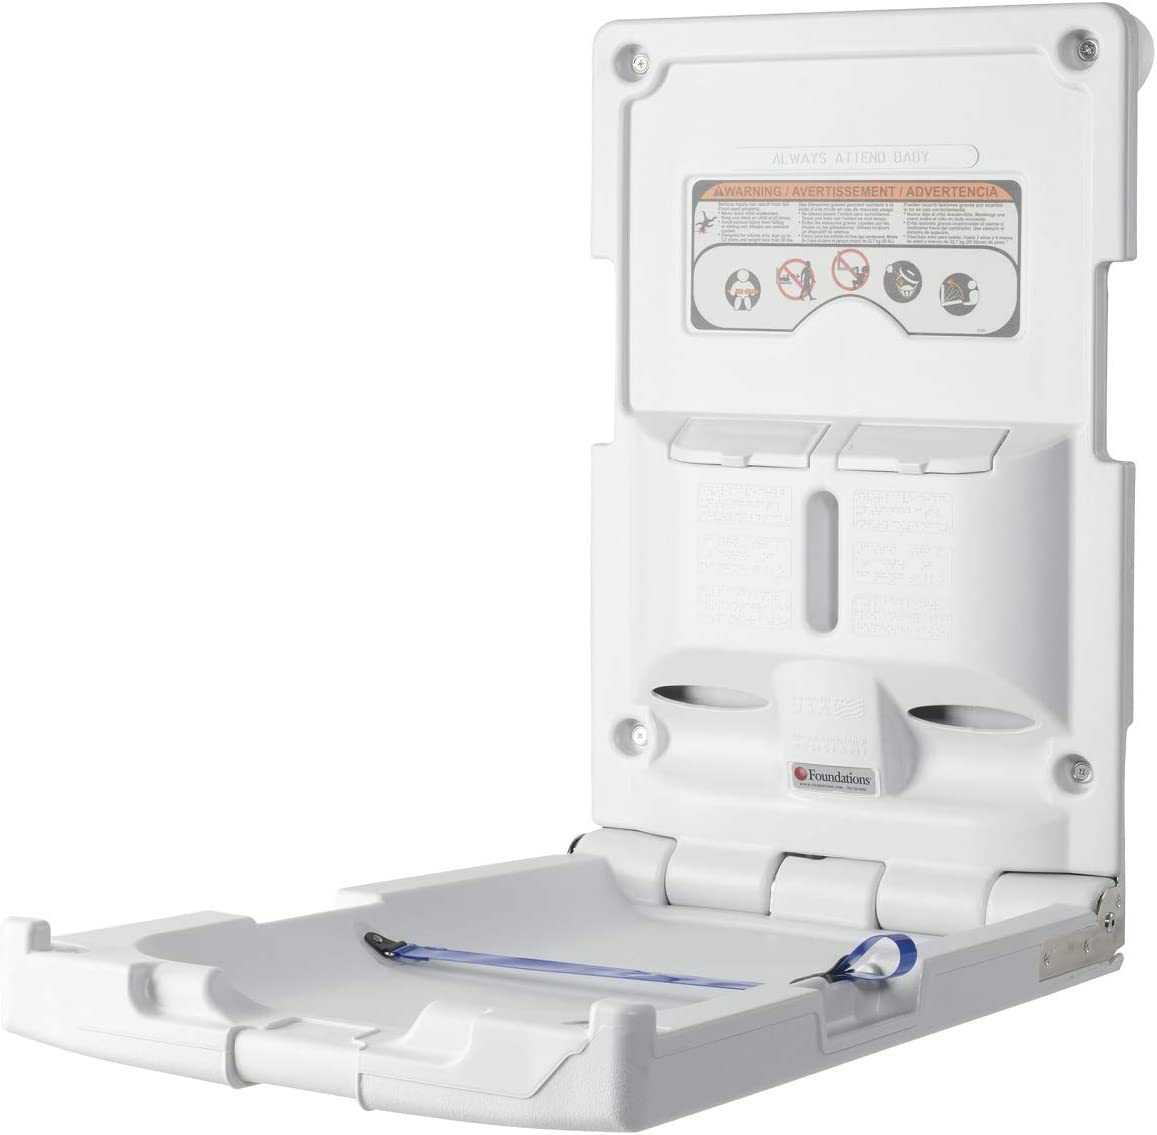 Foundations Classic Vertical Surface Mount Baby Changing Station Light Gray